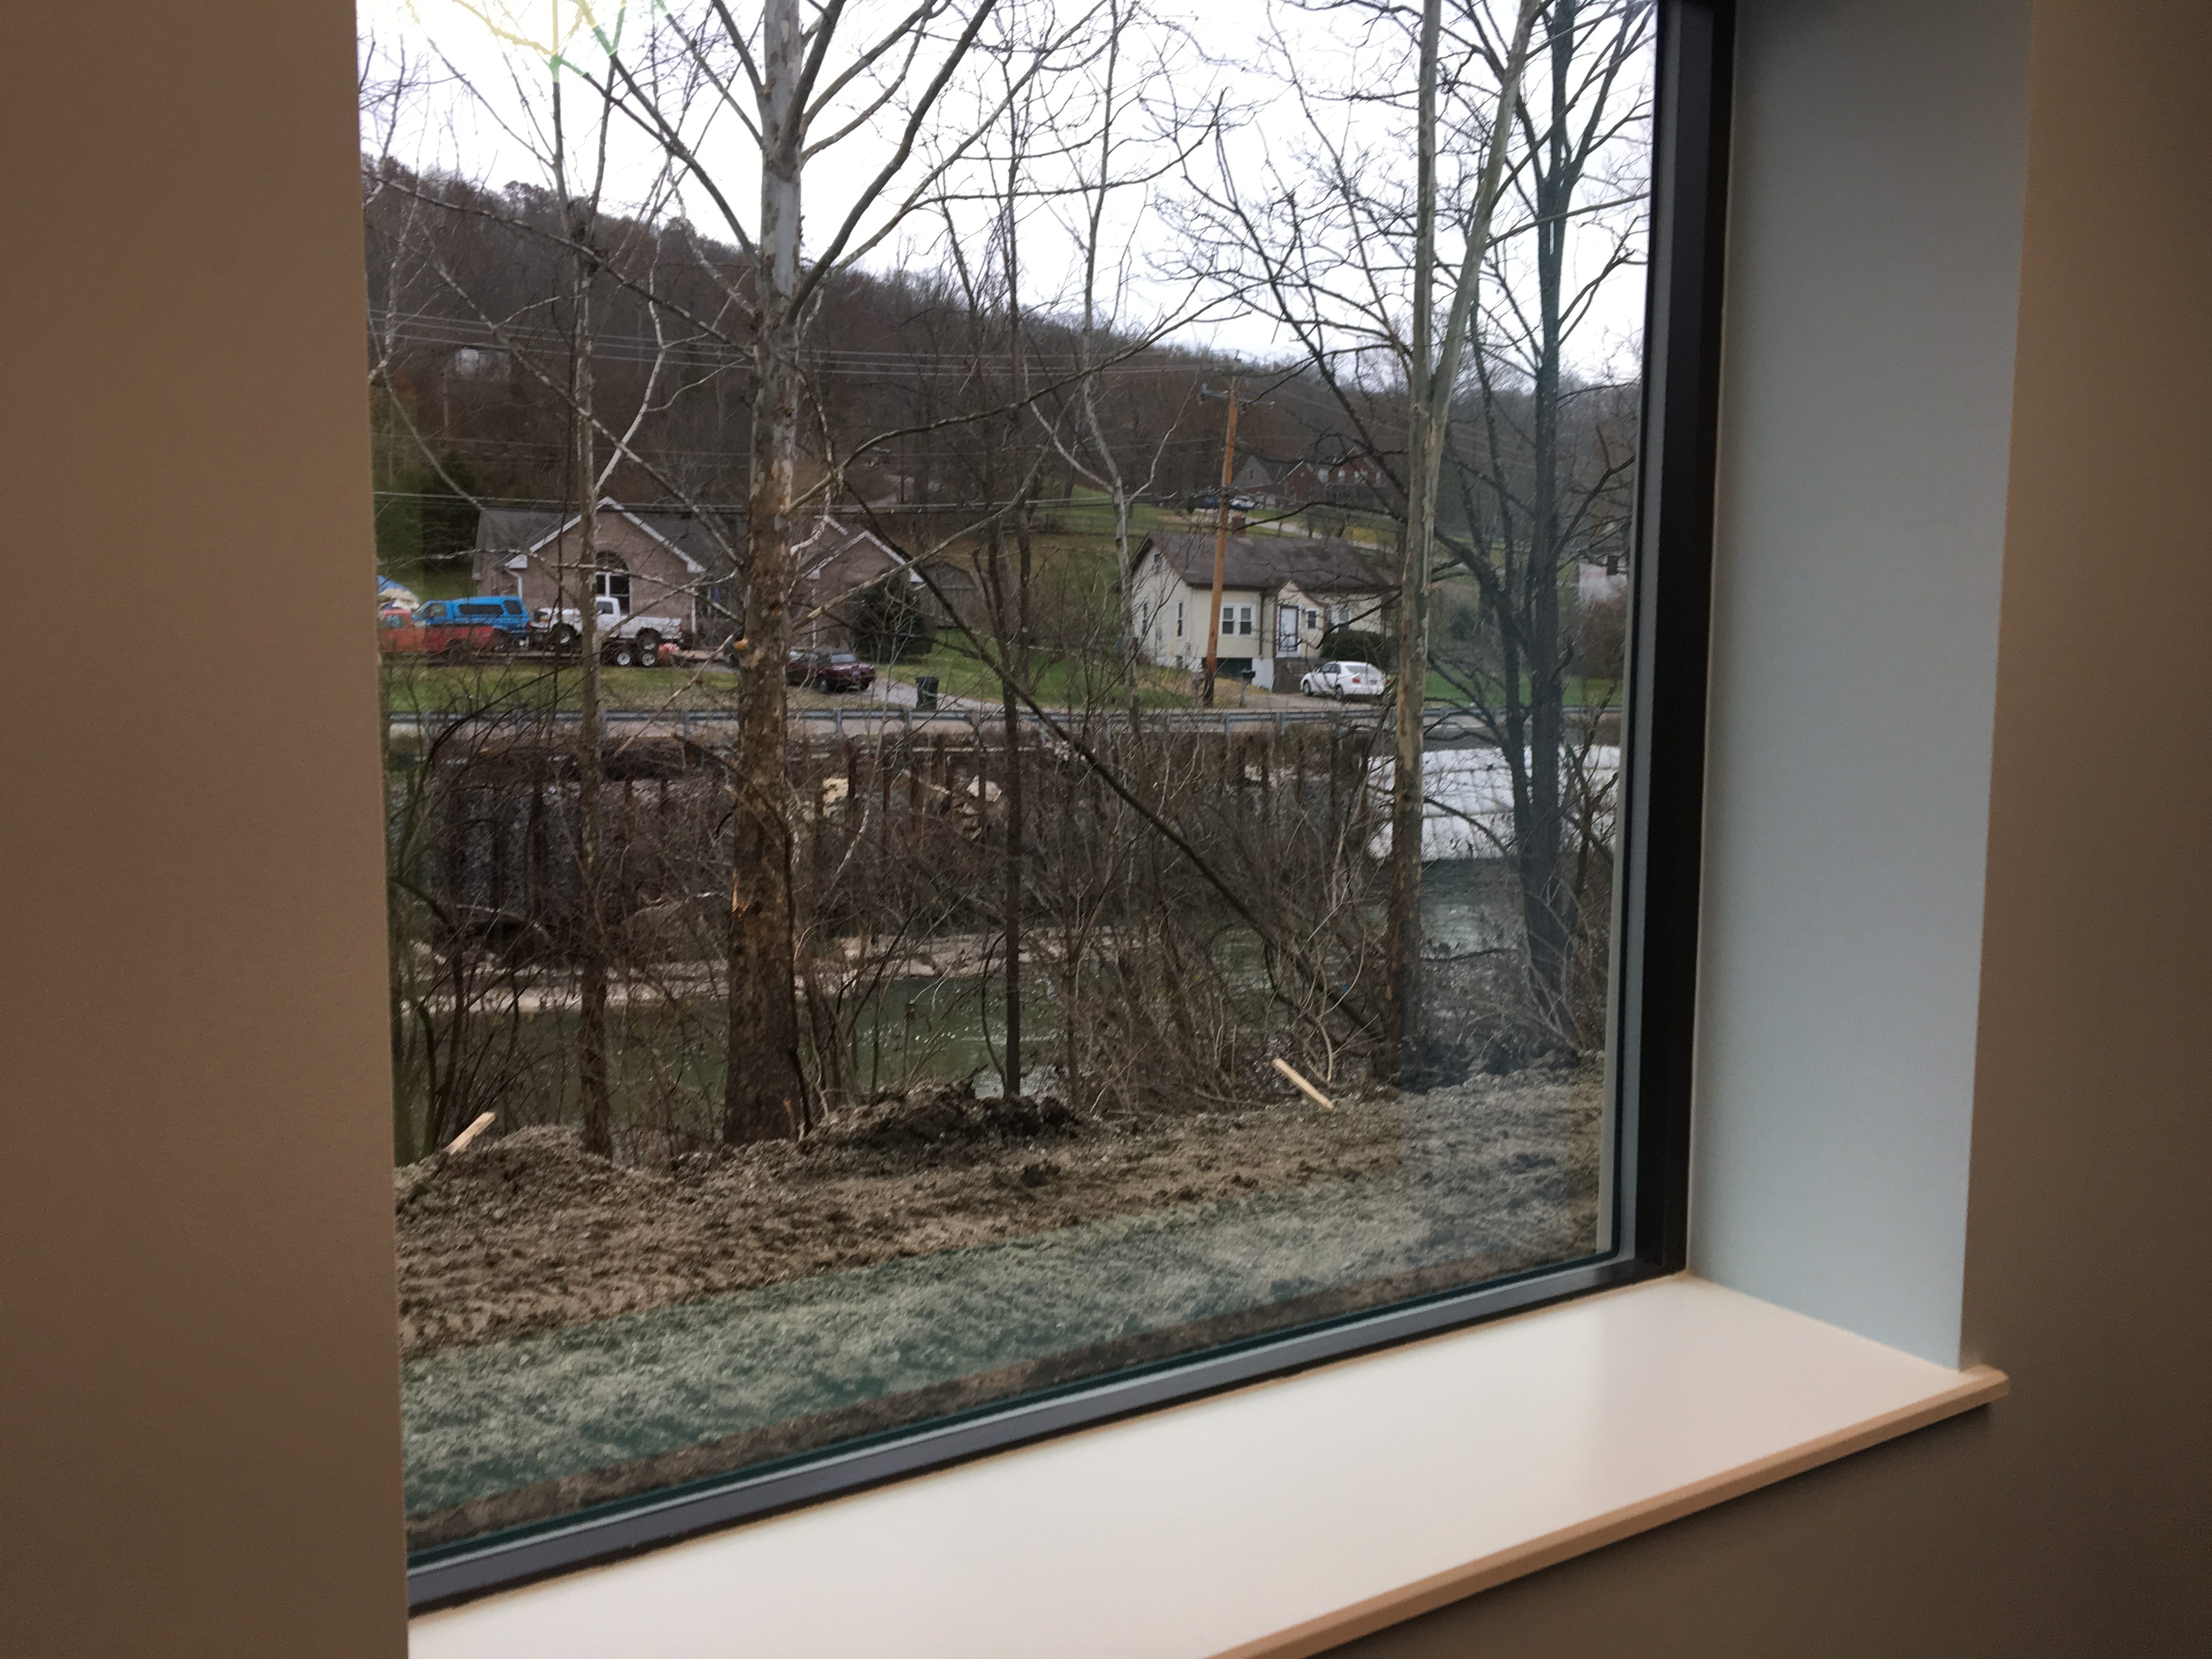 Several of the residential rooms feature windows to provide a more therapeutic stay. Project 180 is a new 180-bed residential treatment facility. It offers treatment on demand, within 180 minutes, to assist individuals in turning their lives around 180 degrees.